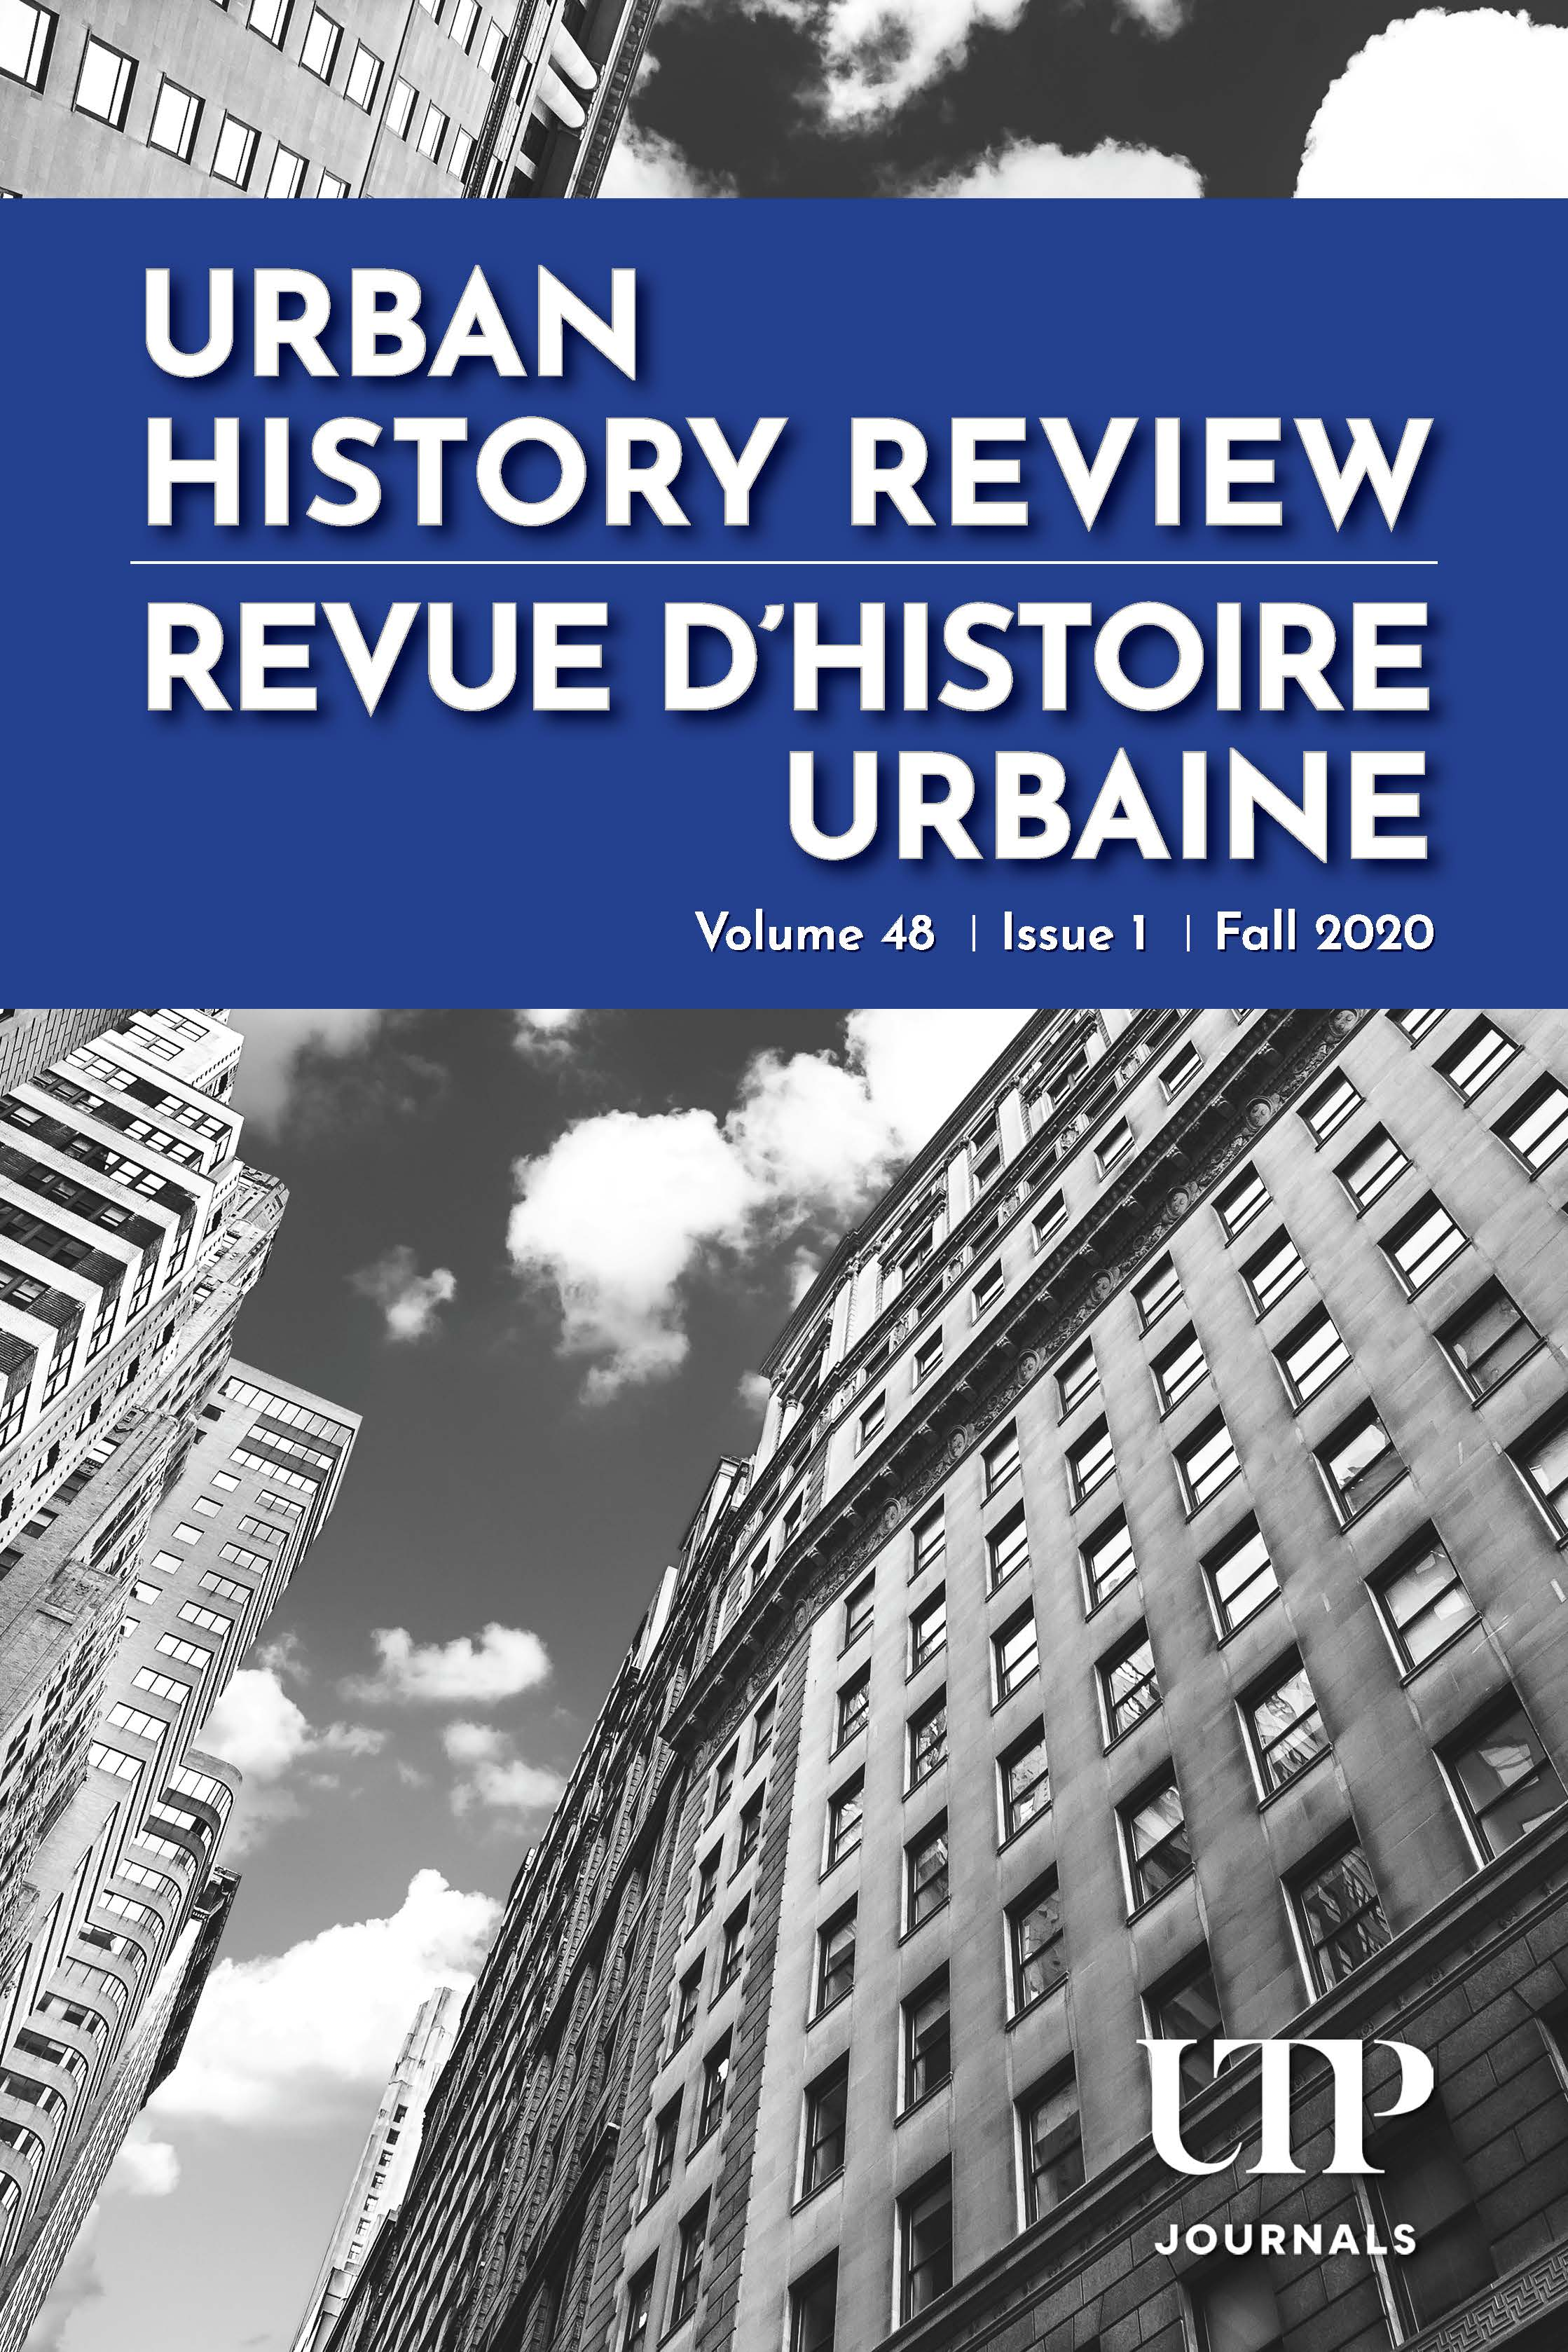 Urban History Review: Volume 48, Issue 1, Fall 2020